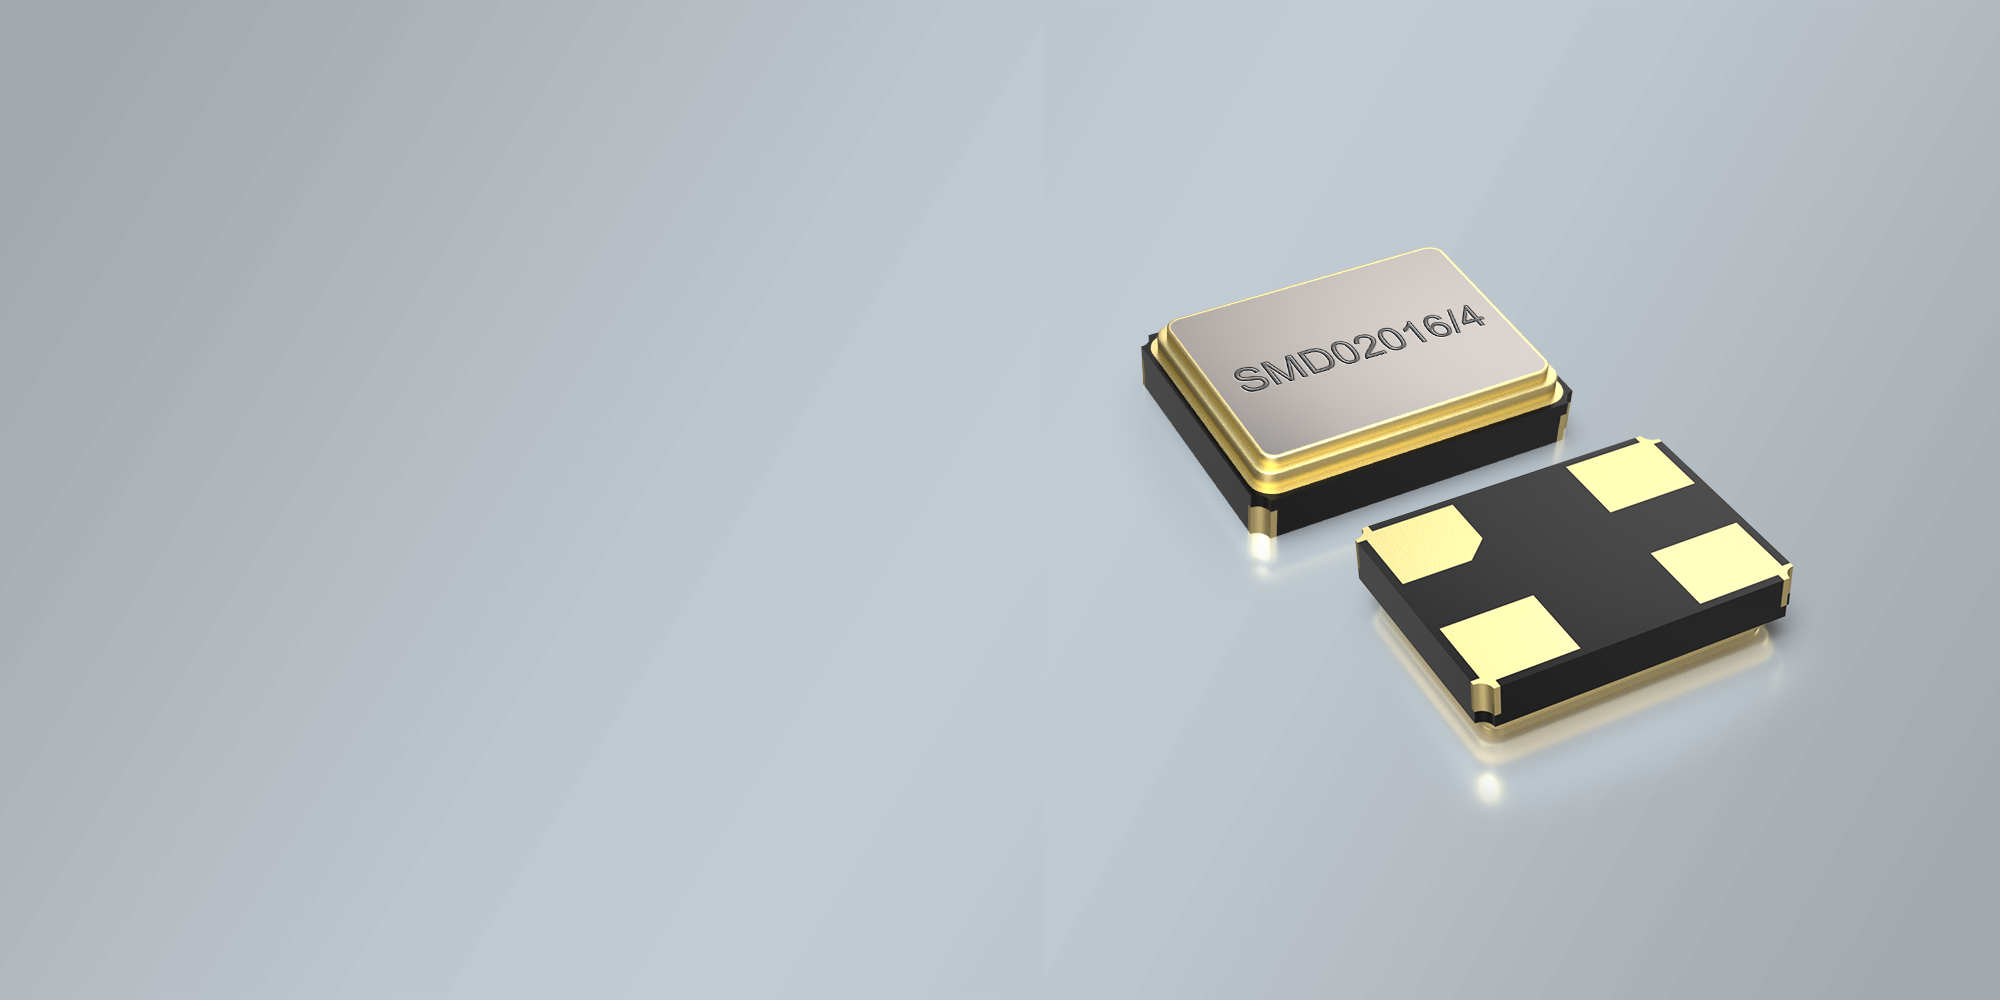 SMD QUARZ 2.0 x 1.6 mm 20.0 - 60.0 MHz